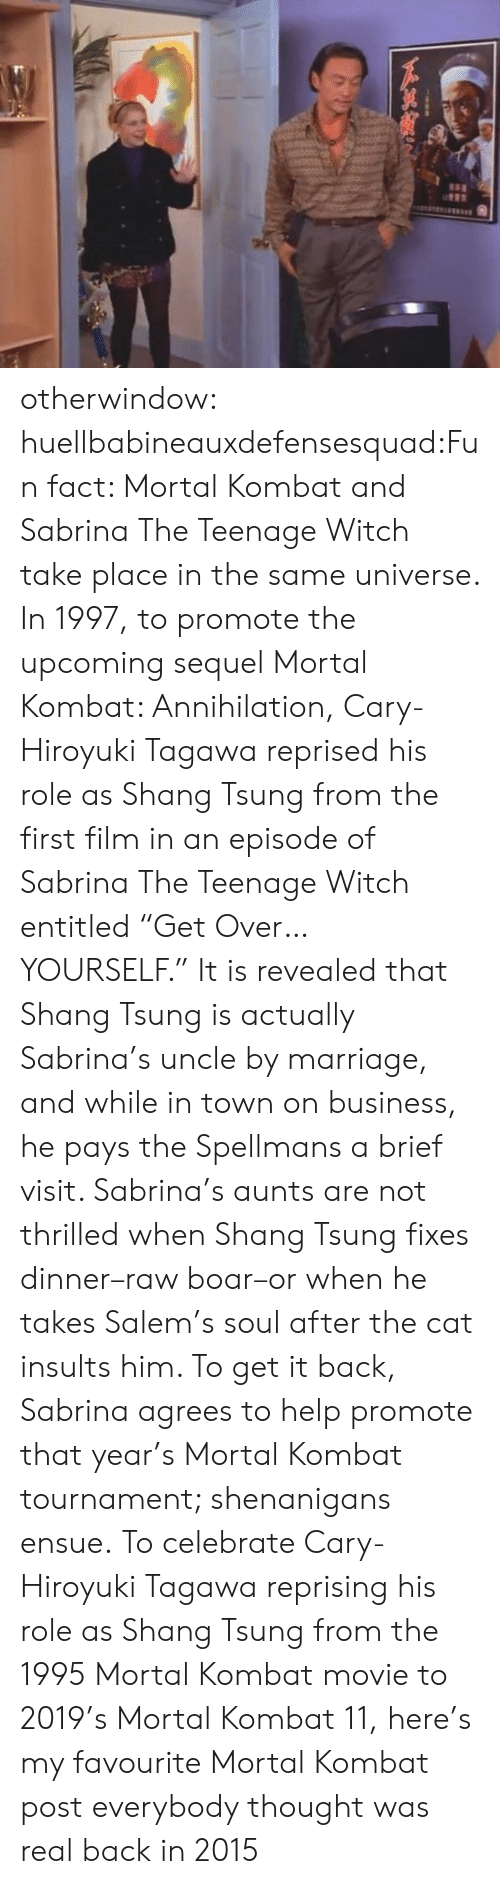 """Marriage, Mortal Kombat, and Sabrina, the Teenage Witch: otherwindow:  huellbabineauxdefensesquad:Fun fact: Mortal Kombat and Sabrina The Teenage Witch take place in the same universe. In 1997, to promote the upcoming sequel Mortal Kombat: Annihilation, Cary-Hiroyuki Tagawa reprised his role as Shang Tsung from the first film in an episode of Sabrina The Teenage Witch entitled """"Get Over… YOURSELF."""" It is revealed that Shang Tsung is actually Sabrina's uncle by marriage, and while in town on business, he pays the Spellmans a brief visit. Sabrina's aunts are not thrilled when Shang Tsung fixes dinner–raw boar–or when he takes Salem's soul after the cat insults him. To get it back, Sabrina agrees to help promote that year's Mortal Kombat tournament; shenanigans ensue.   To celebrate Cary-Hiroyuki Tagawa reprising his role as Shang Tsung from the 1995 Mortal Kombat movie to 2019's Mortal Kombat 11, here's my favourite Mortal Kombat post everybody thought was real back in 2015"""